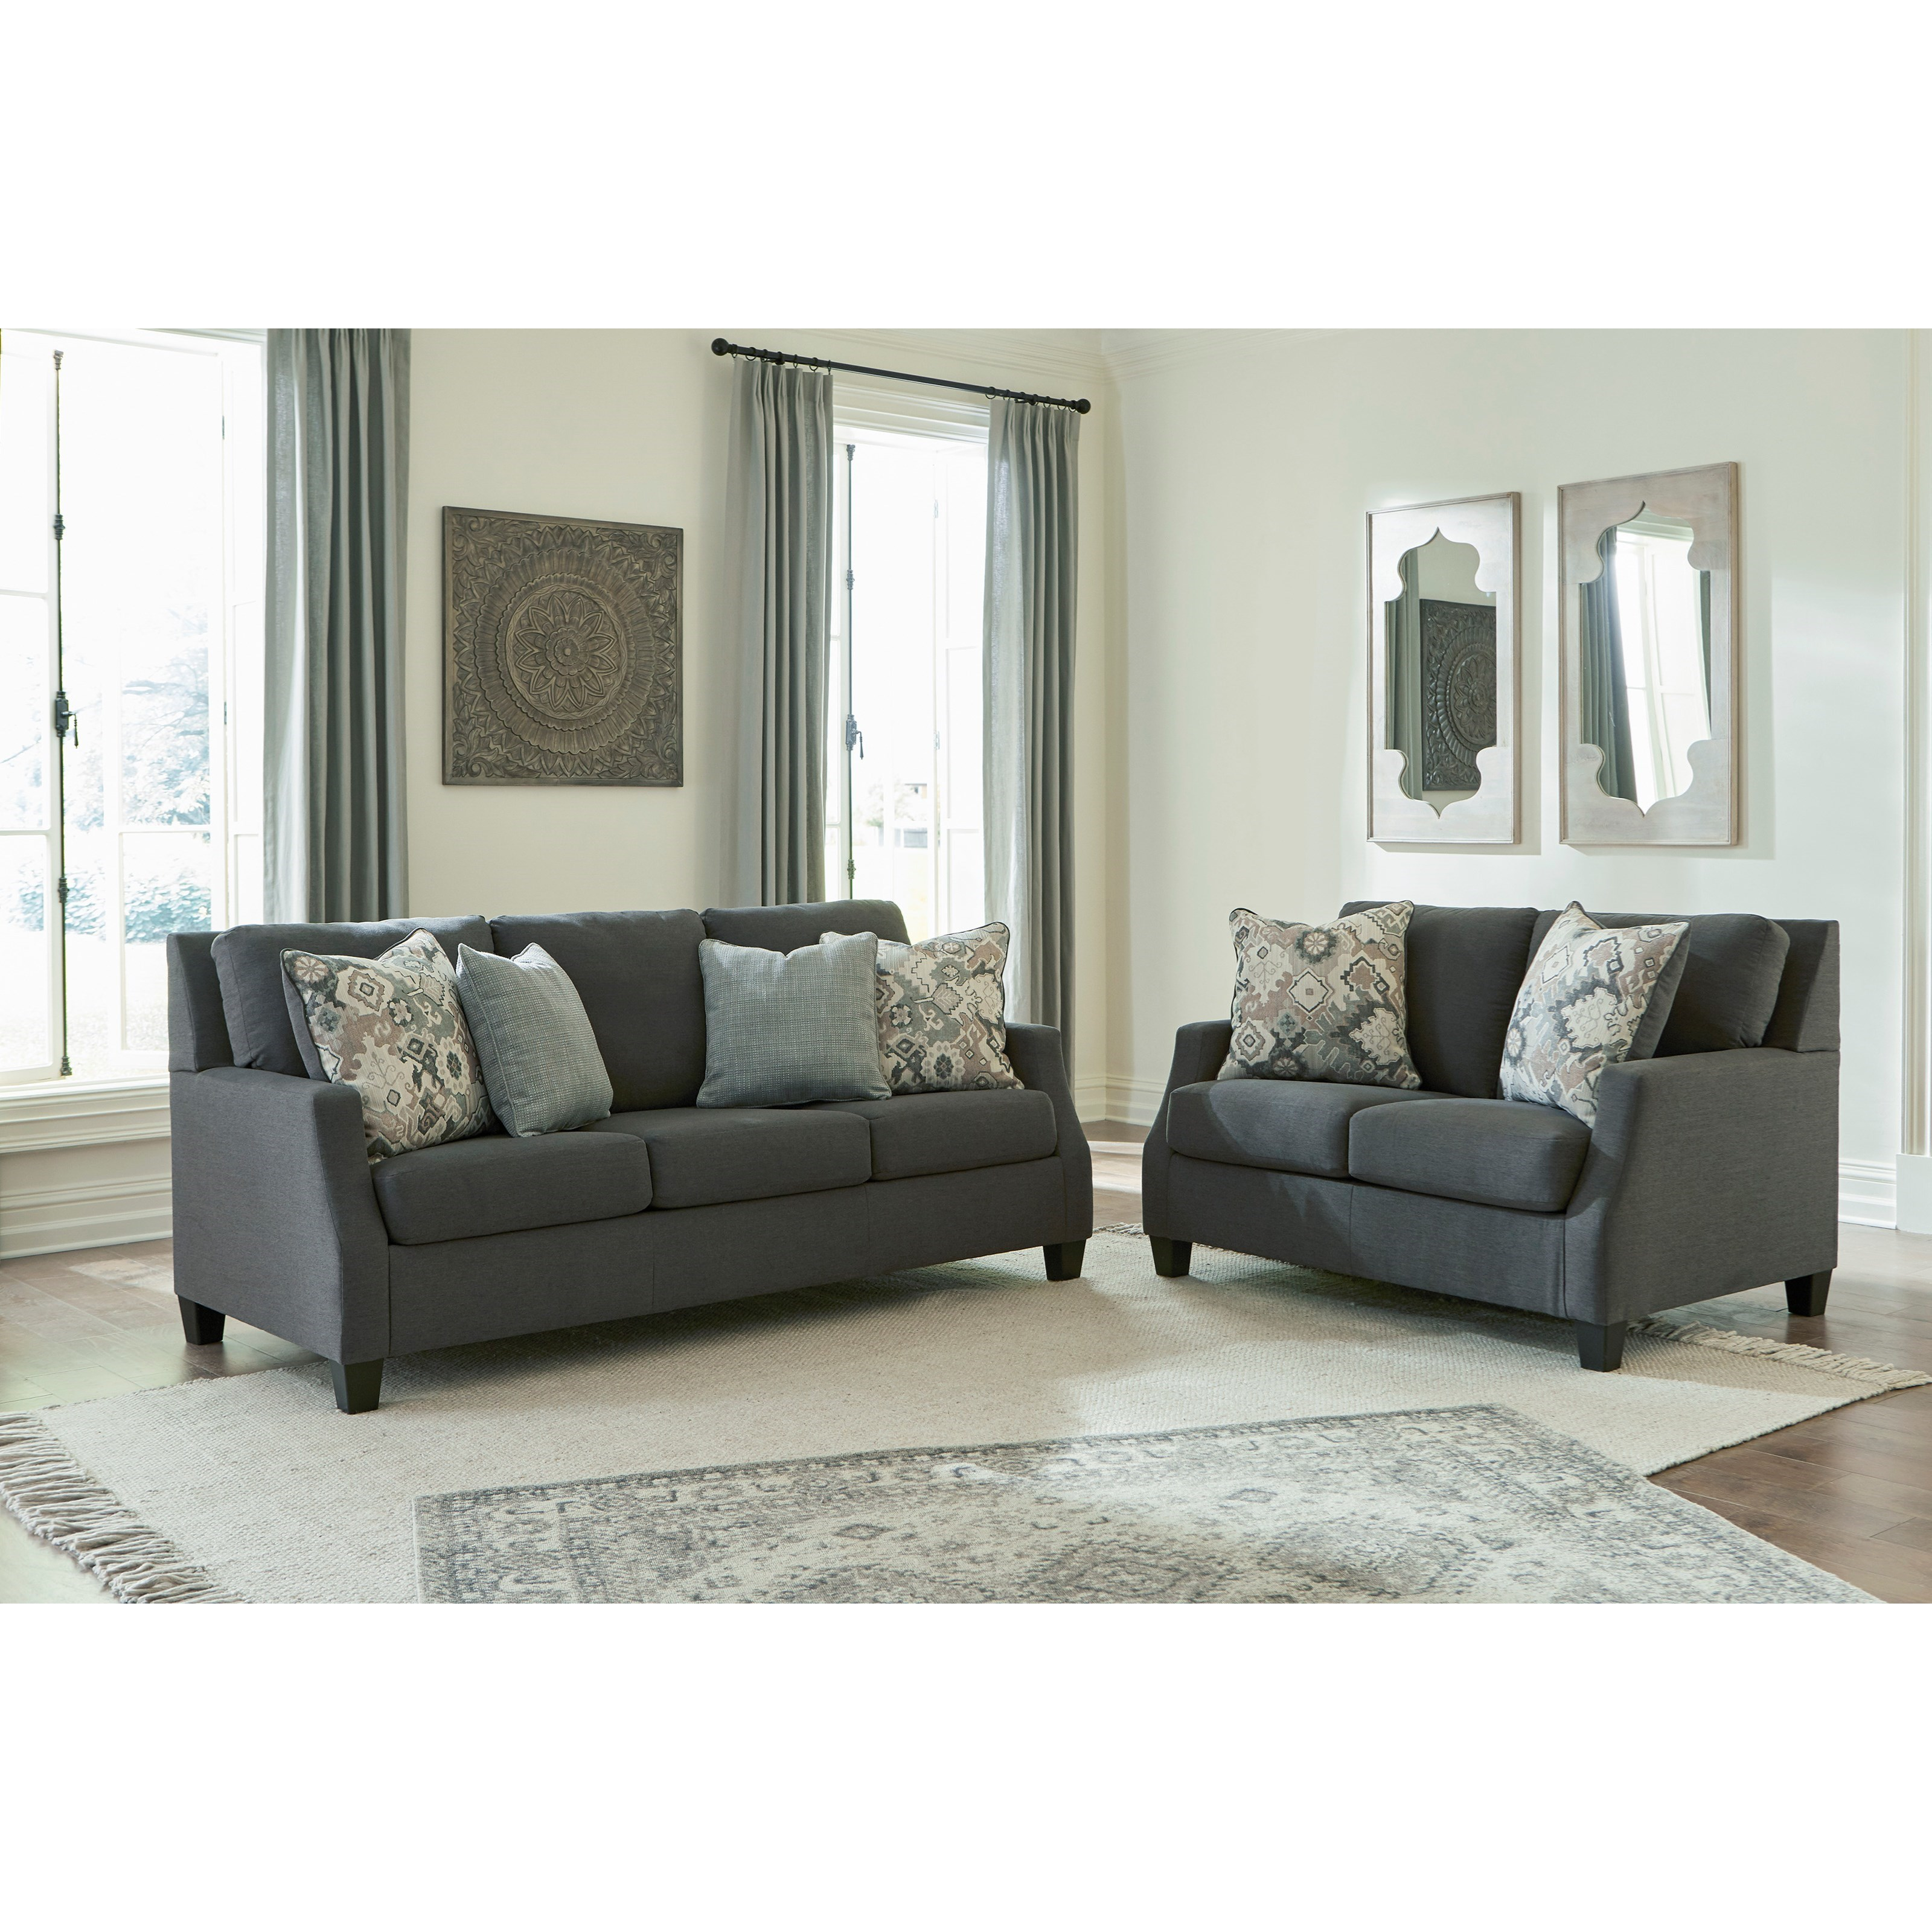 Bayonne Living Room Group by Signature Design by Ashley at Prime Brothers Furniture